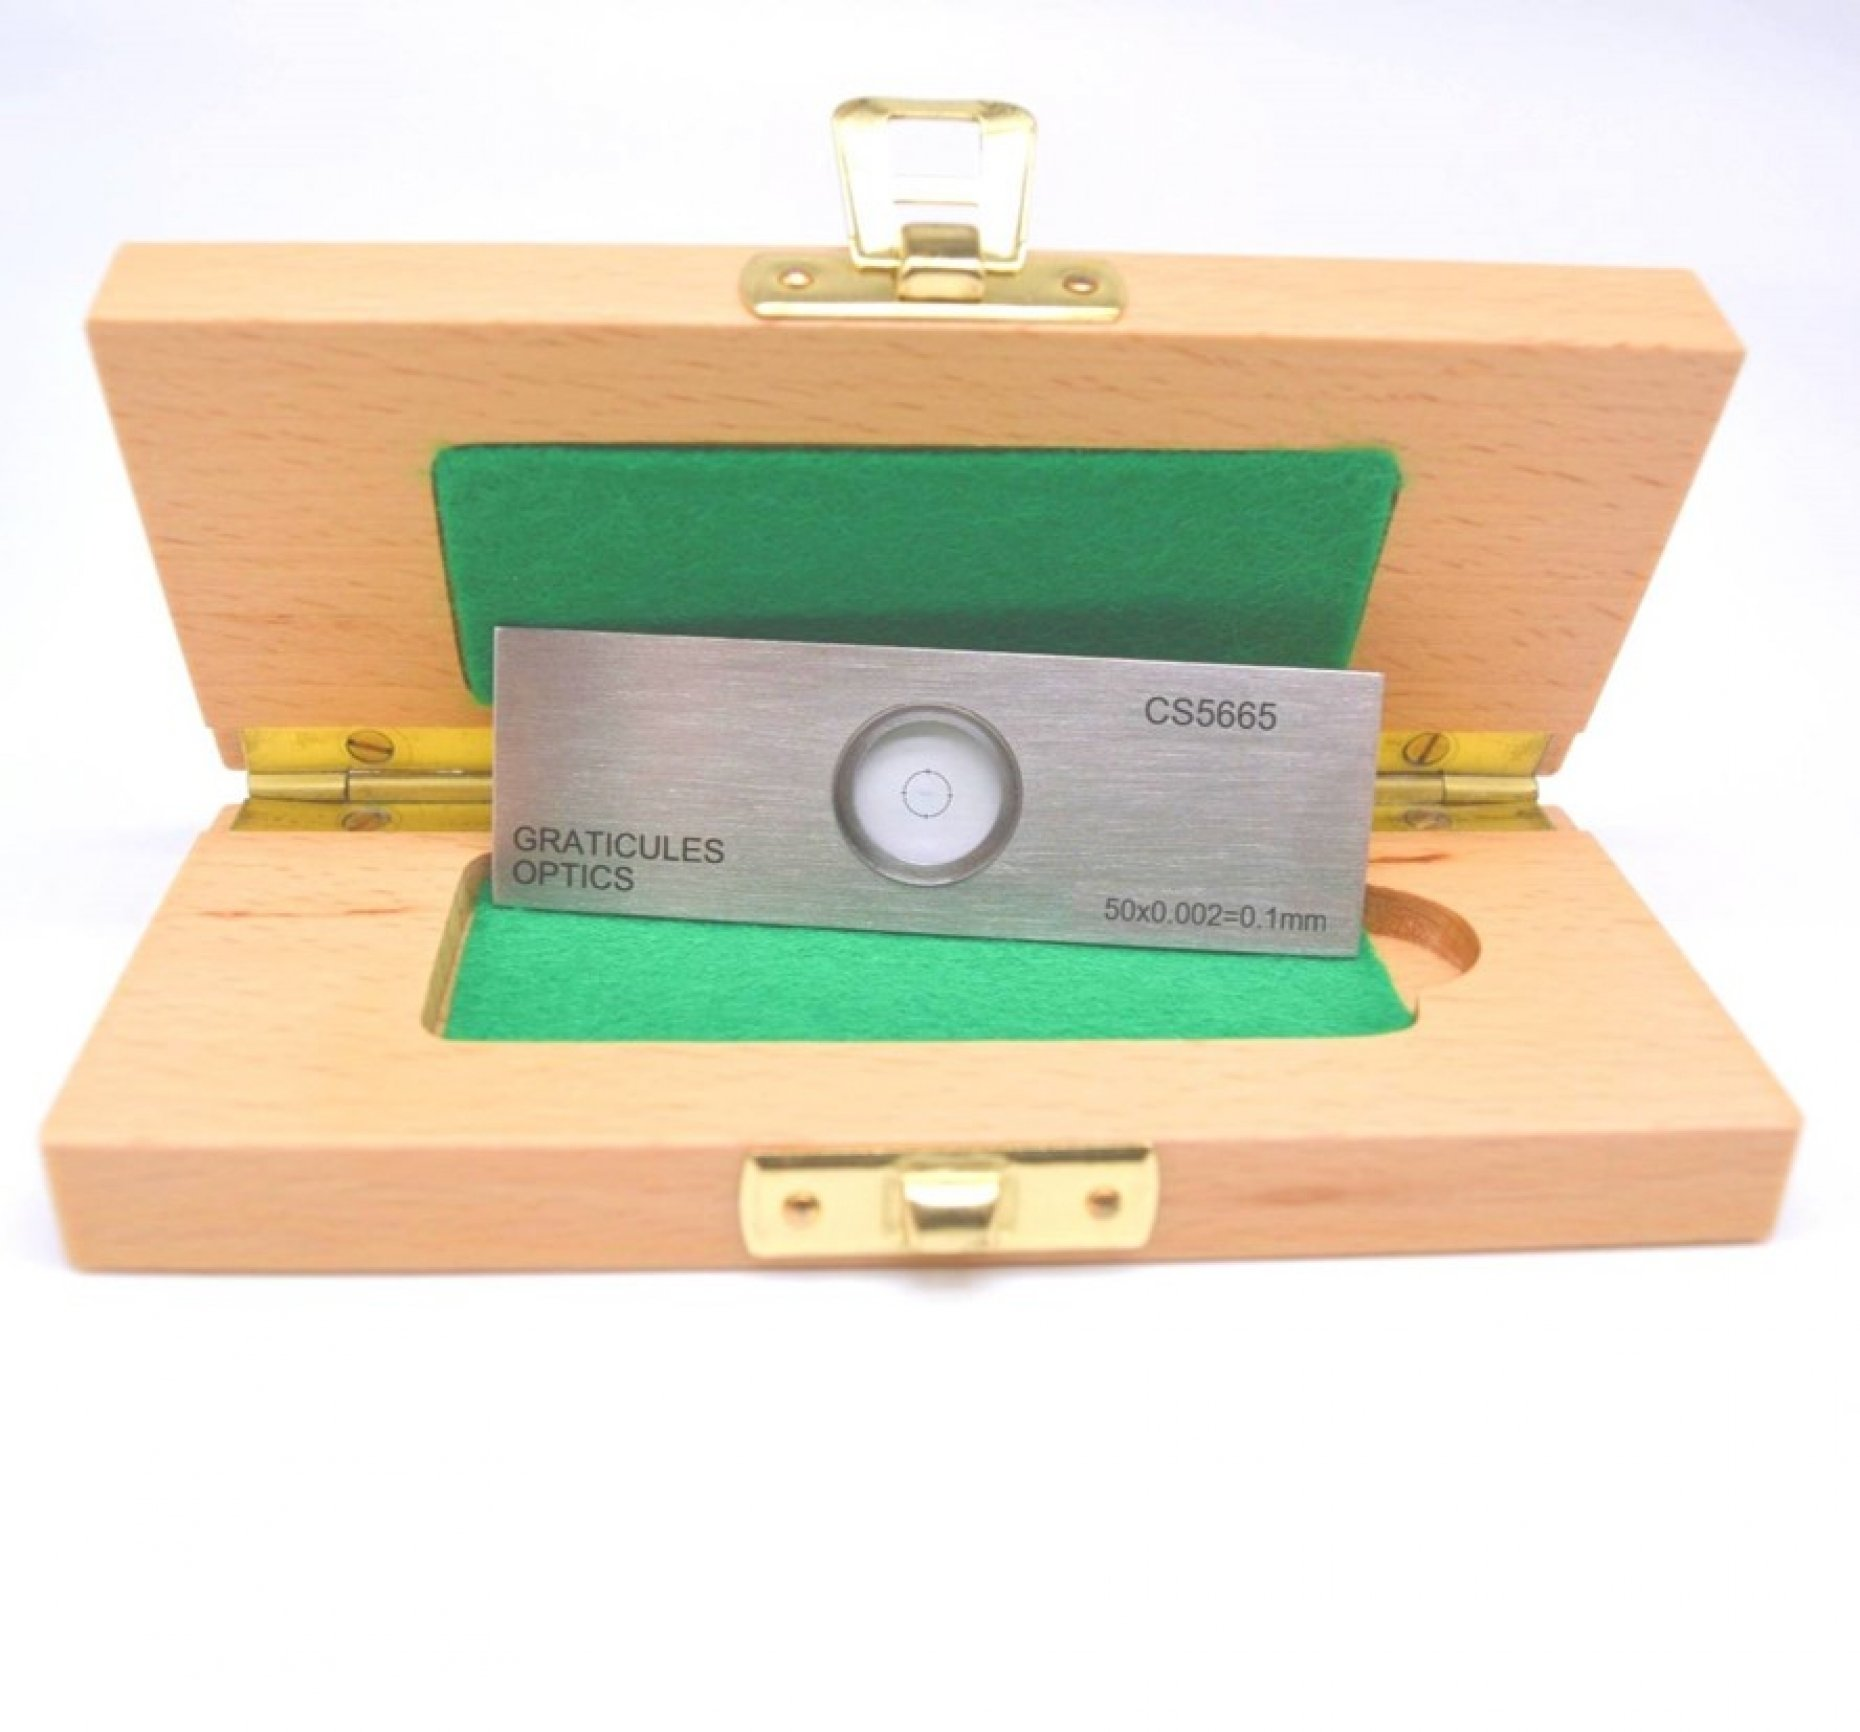 PS12 Stage Micrometer 0.1mm/0.002mm Product